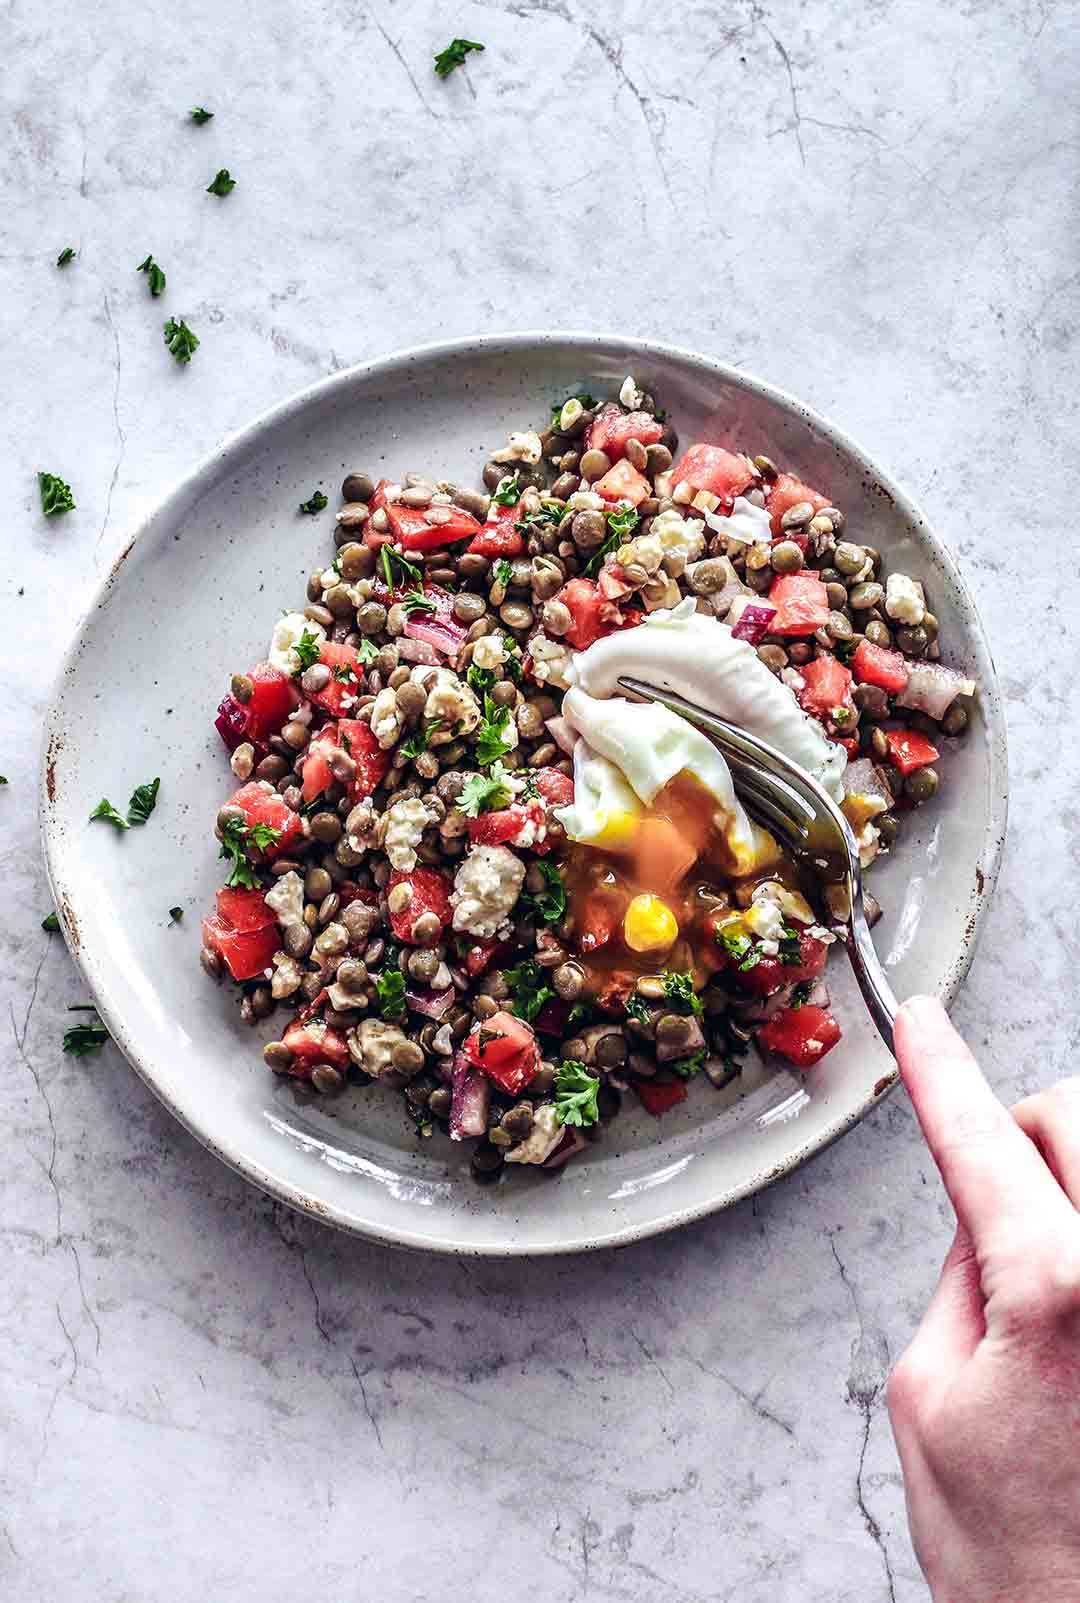 Refreshing Bruschetta Lentils With Feta | Killing Thyme